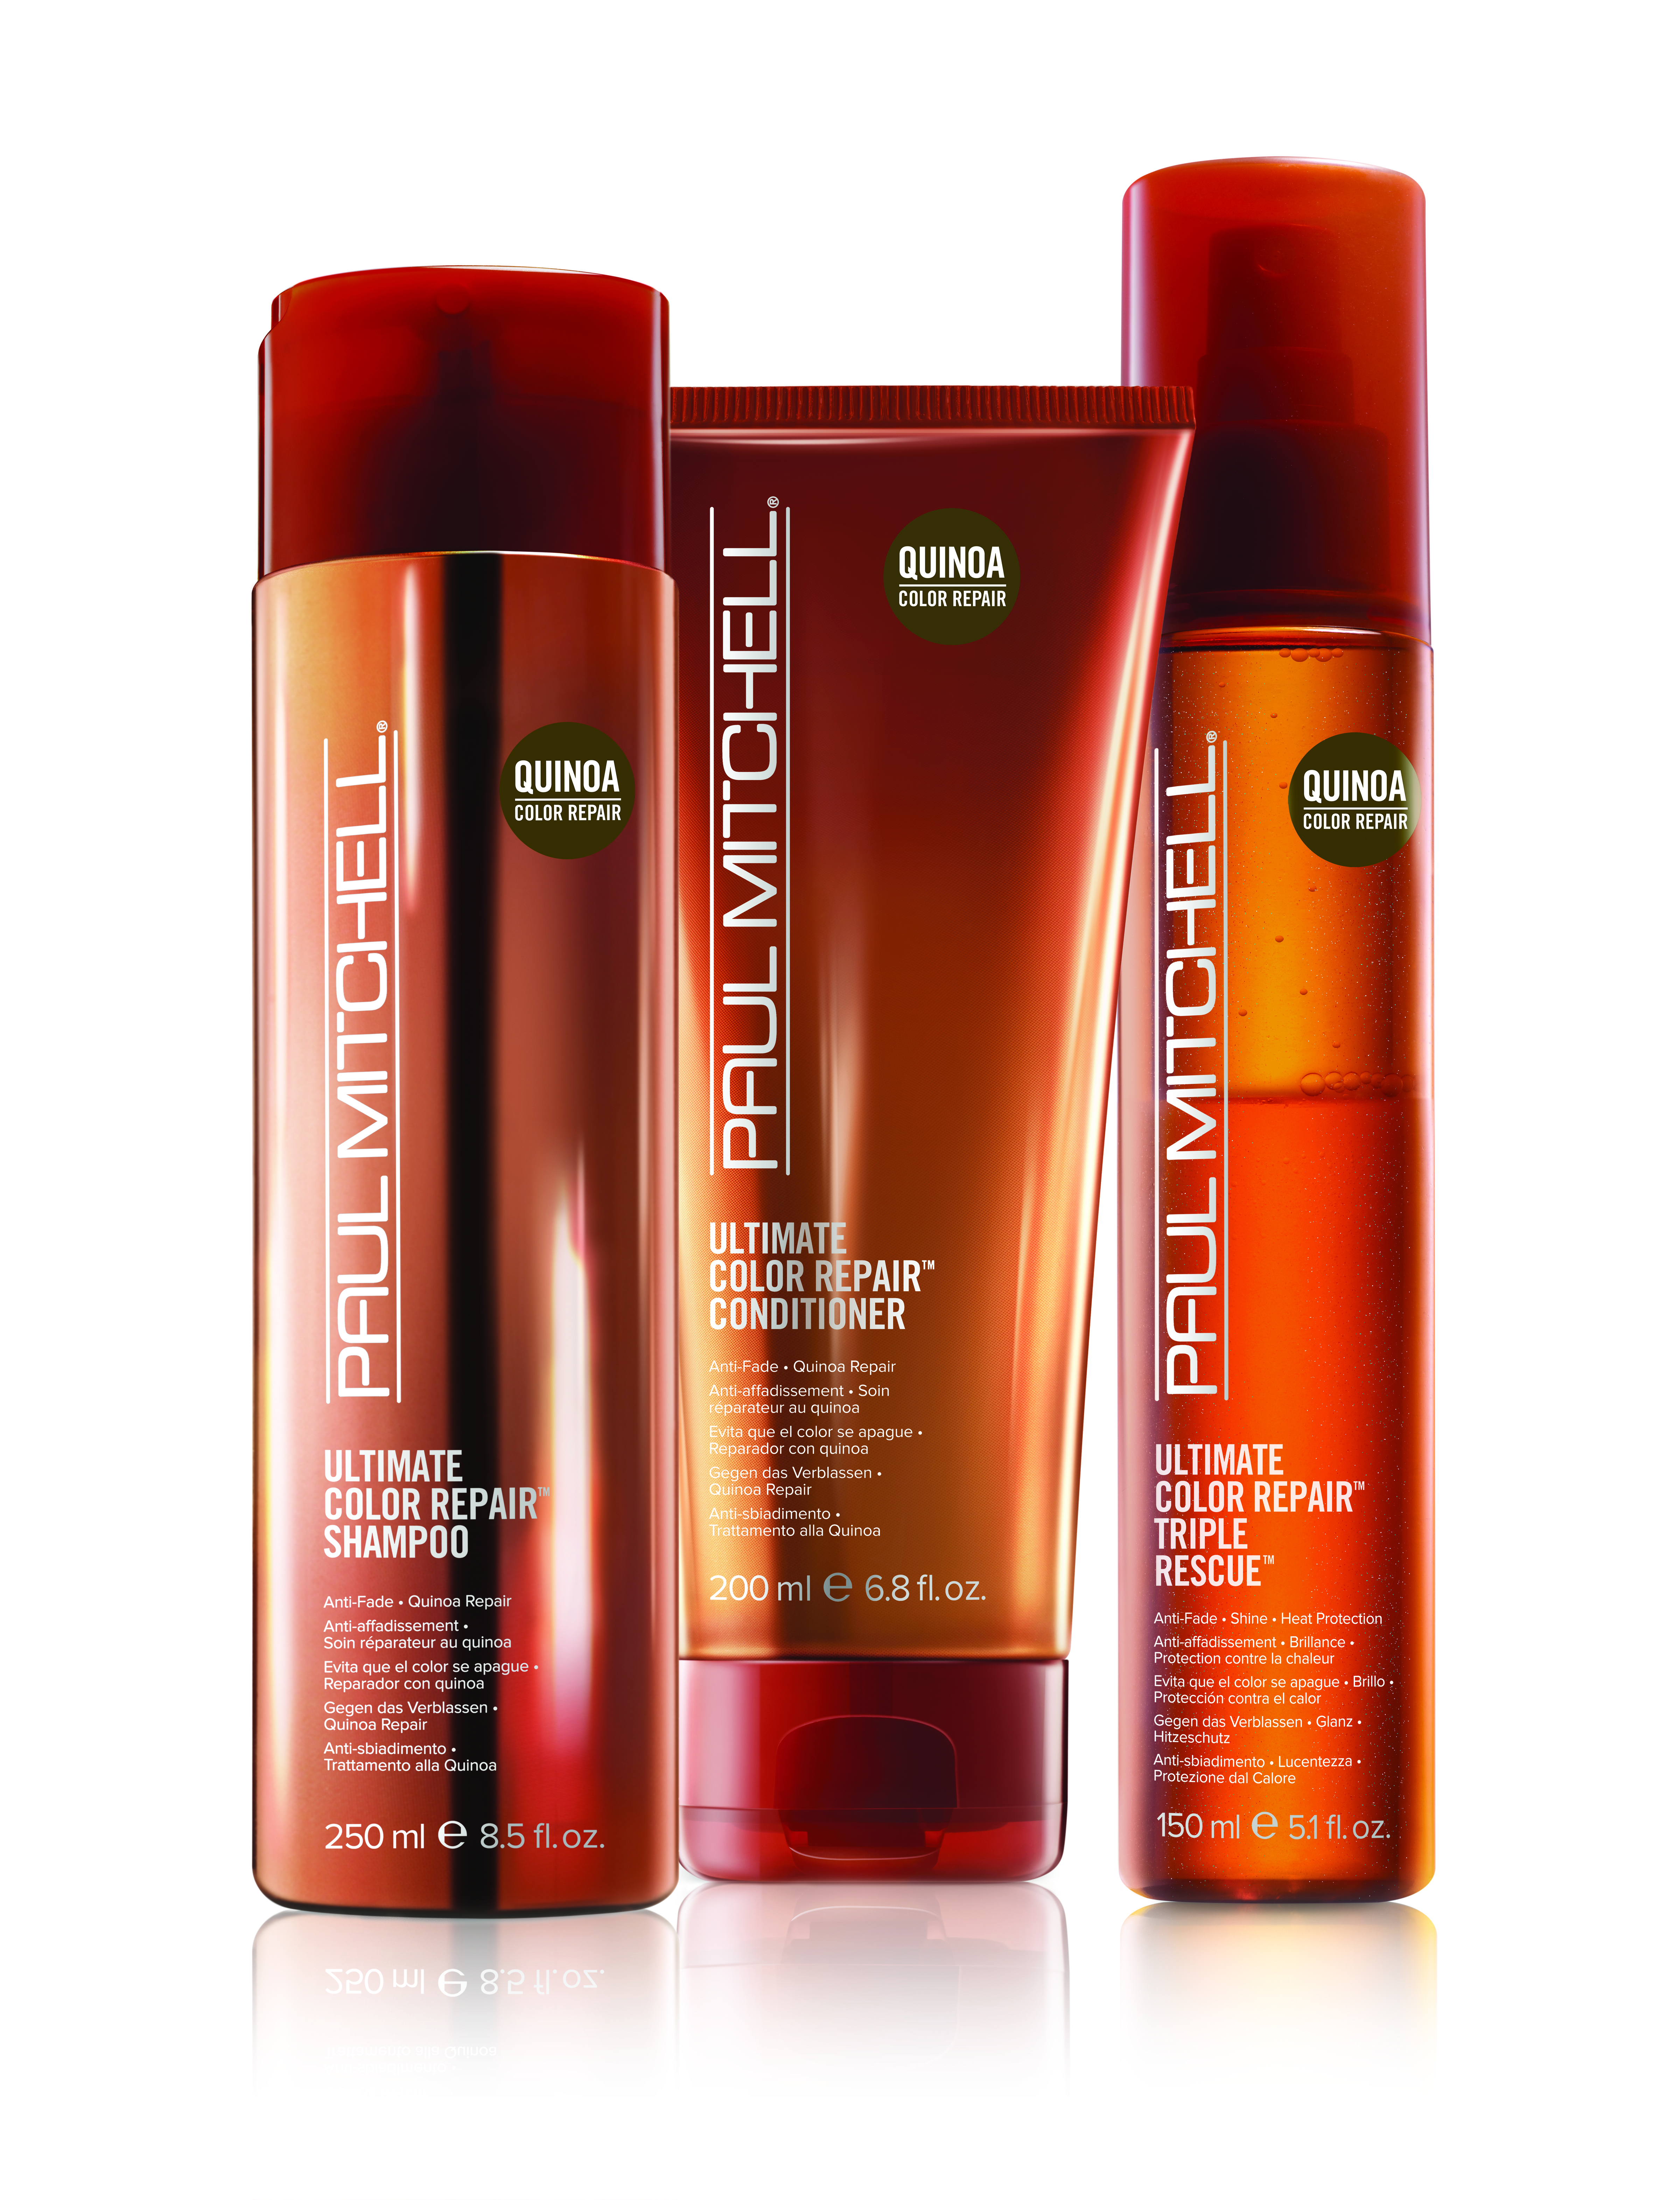 The Ultimate Defense Against Color Fade John Paul Mitchell Systems